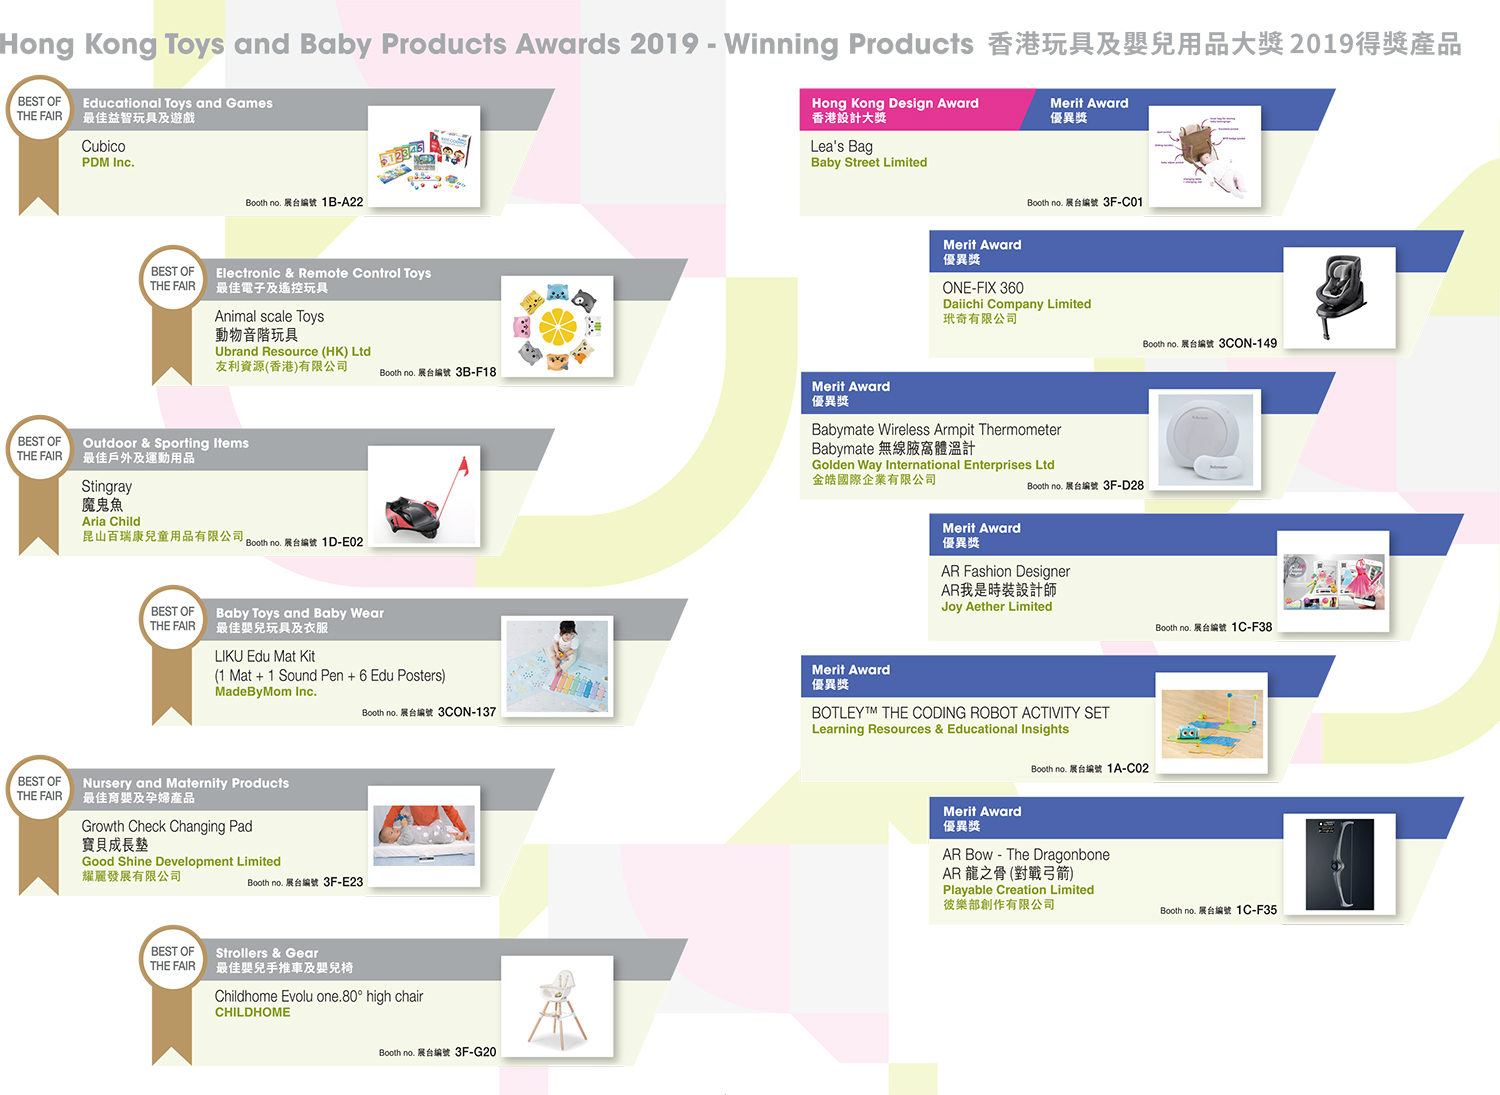 Hong Kong Toys and Baby Products Award 2019